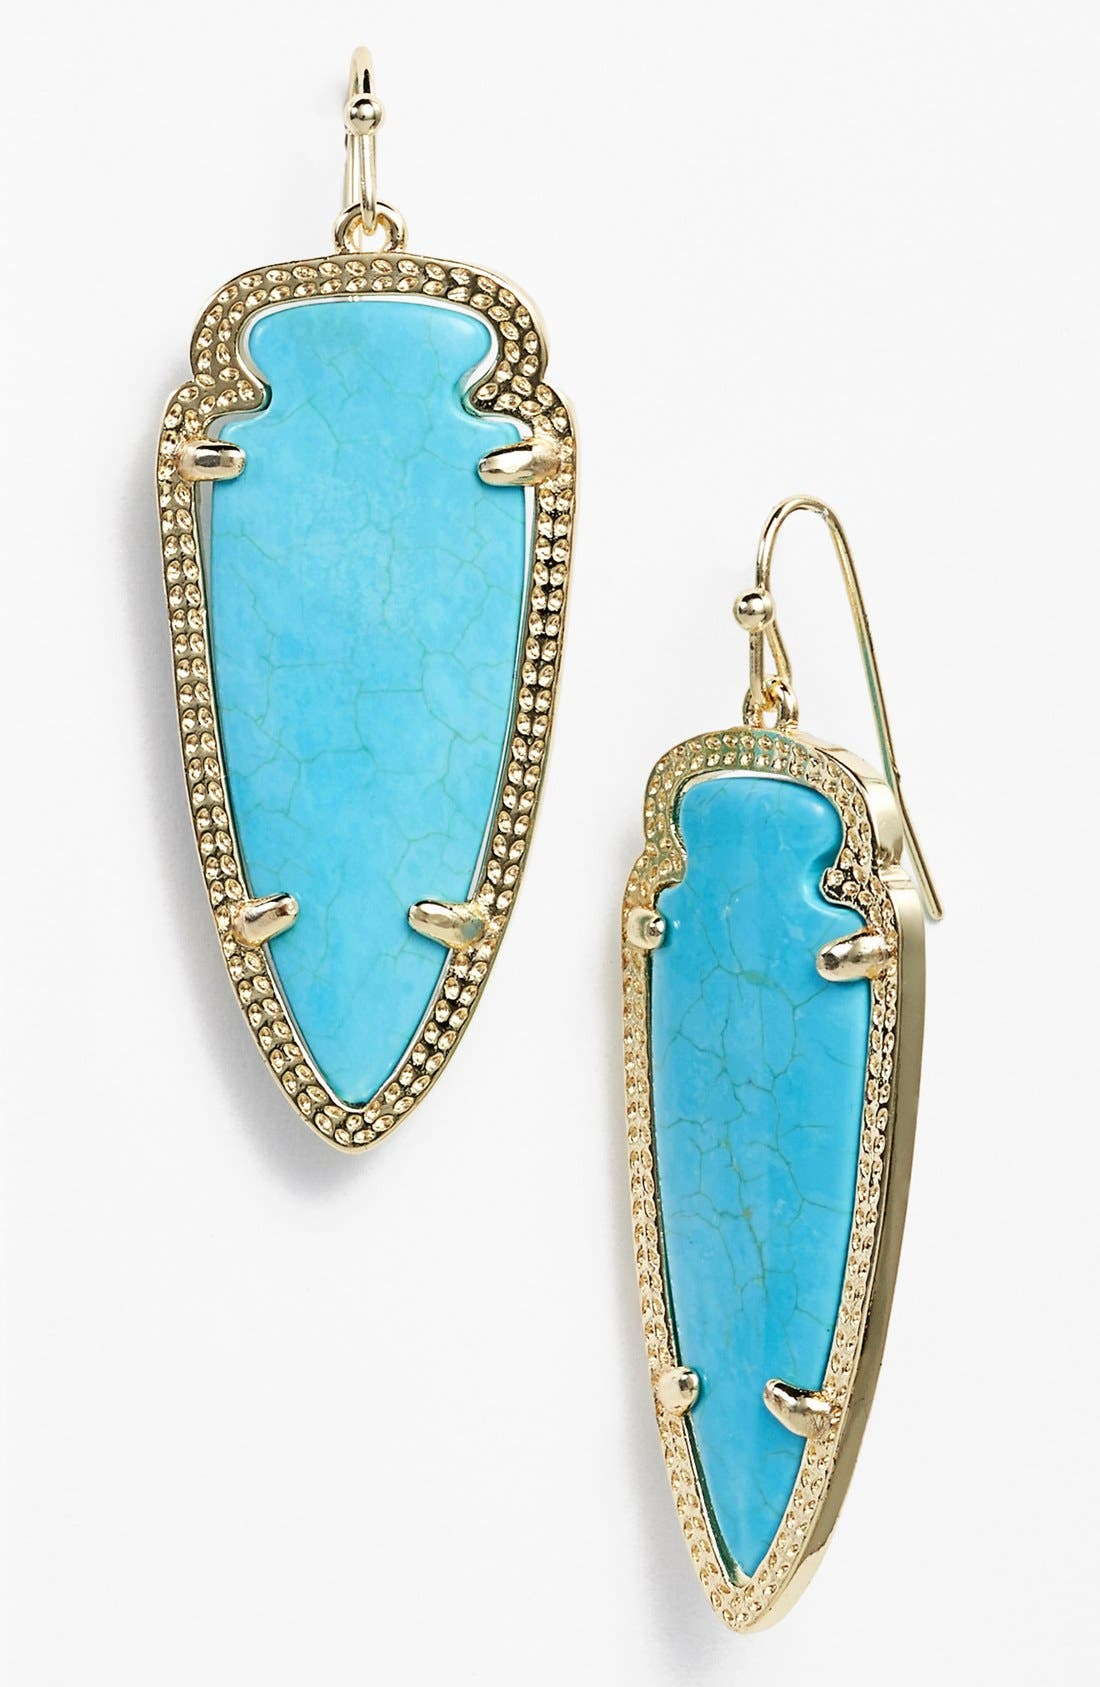 Main Image - Kendra Scott 'Sky Spear' Small Statement Earrings